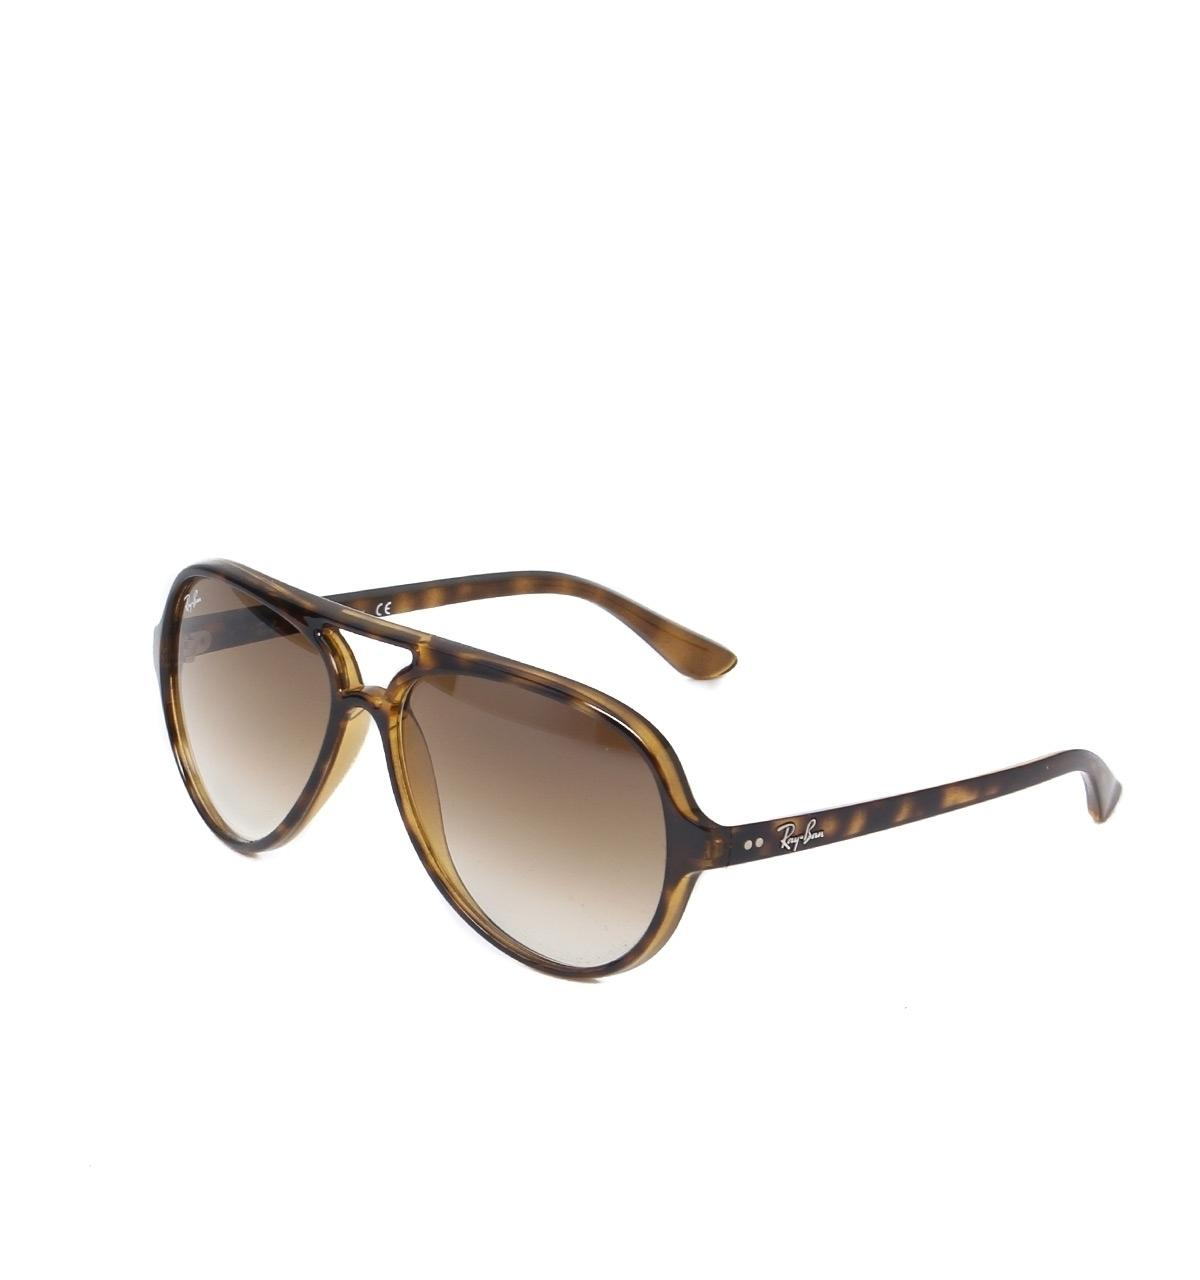 c30c317de0427 clearance ray ban cats 5000 sunglasses womens 391f9 bd09b  where can i buy ray  ban. mens brown ray ban cats 5000 tortoise sunglasses ce469